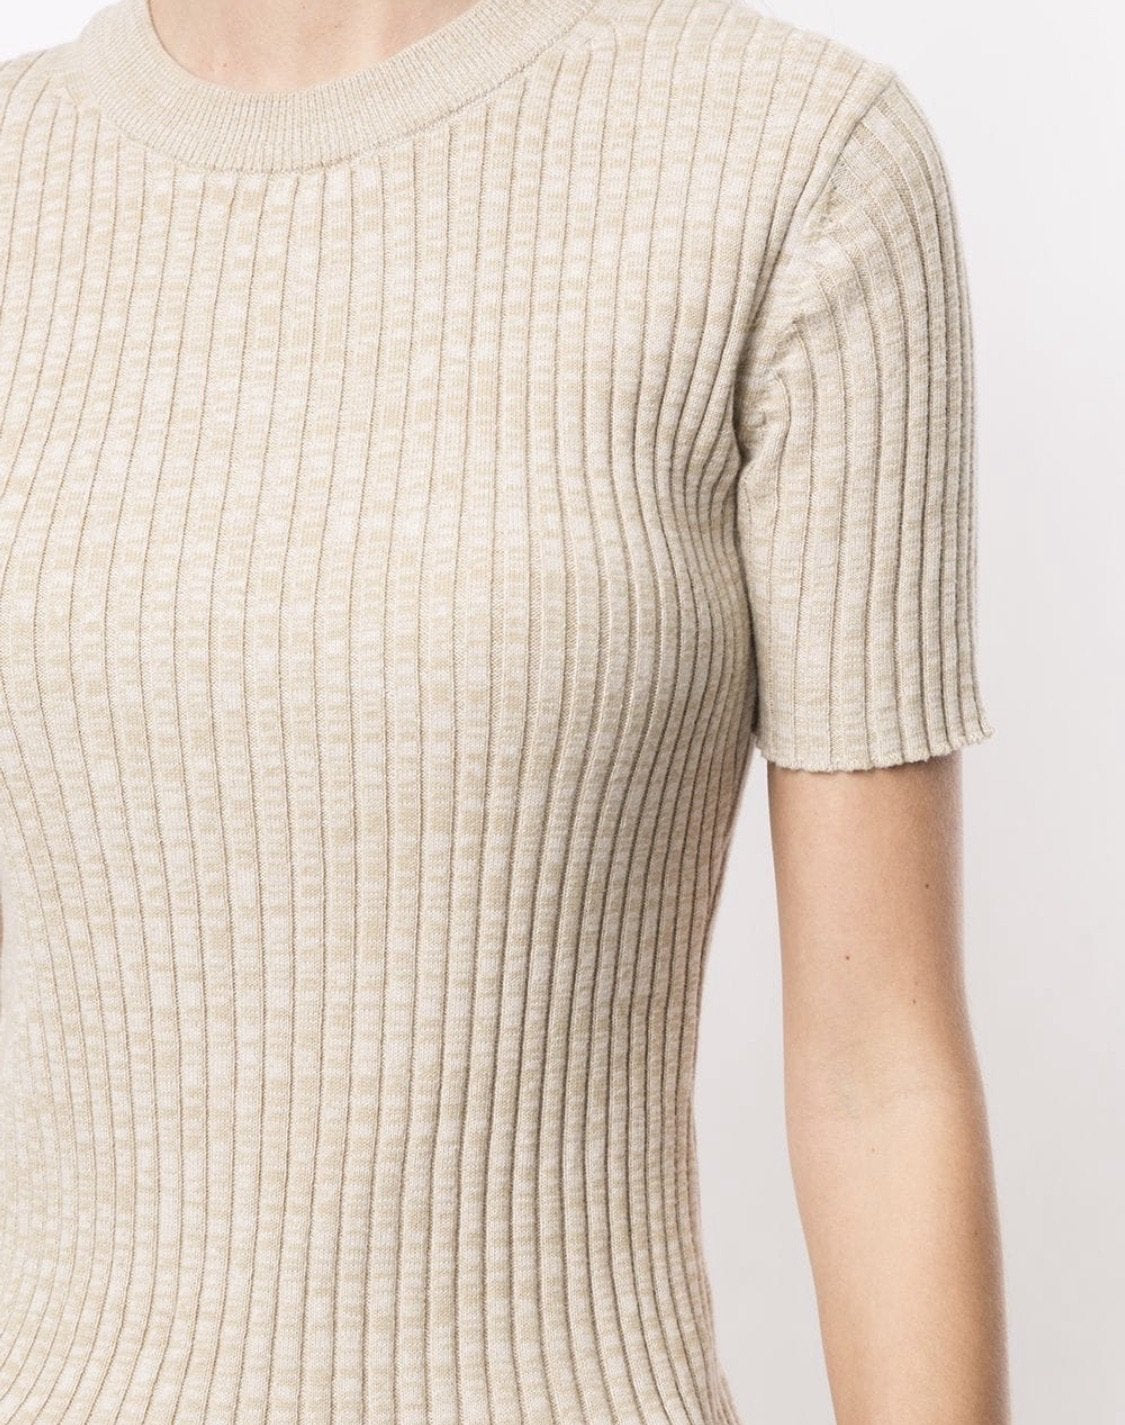 Bebe Short-Sleeved Knitted Top